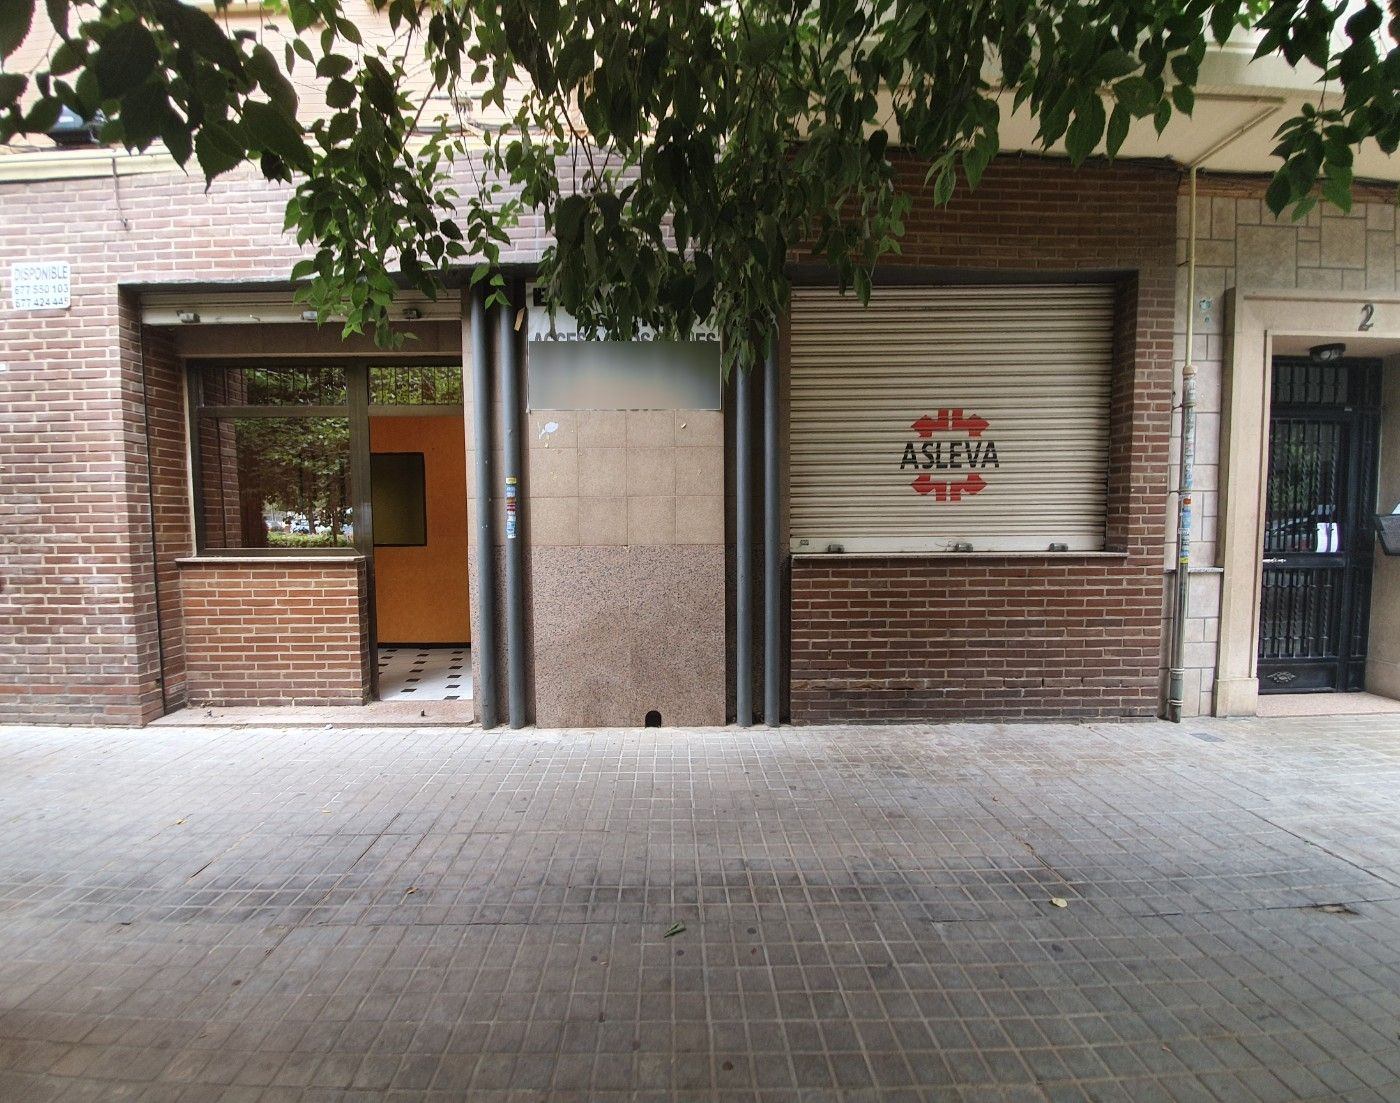 Local Comercial  Calle ebanista caselles. Oportunidad local